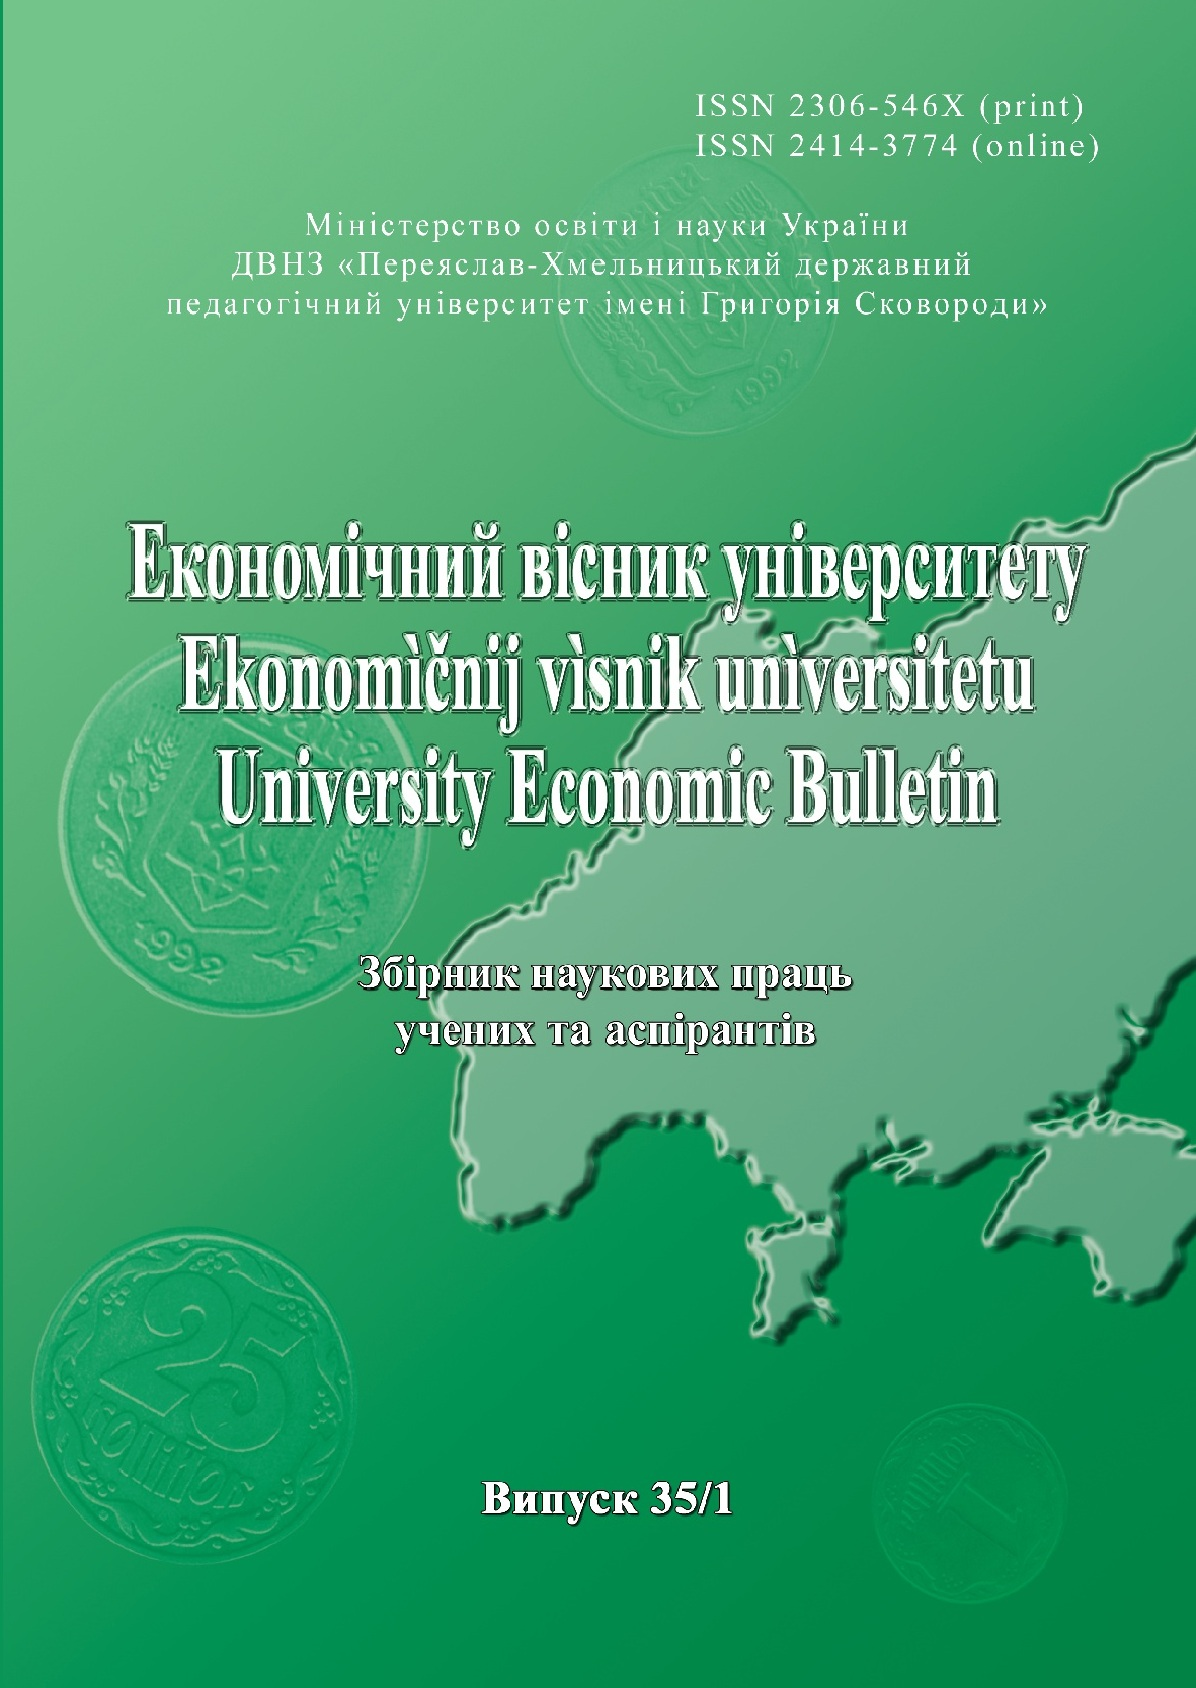 Transformation processes in economics of Ukraine: the reality and ways to change Cover Image